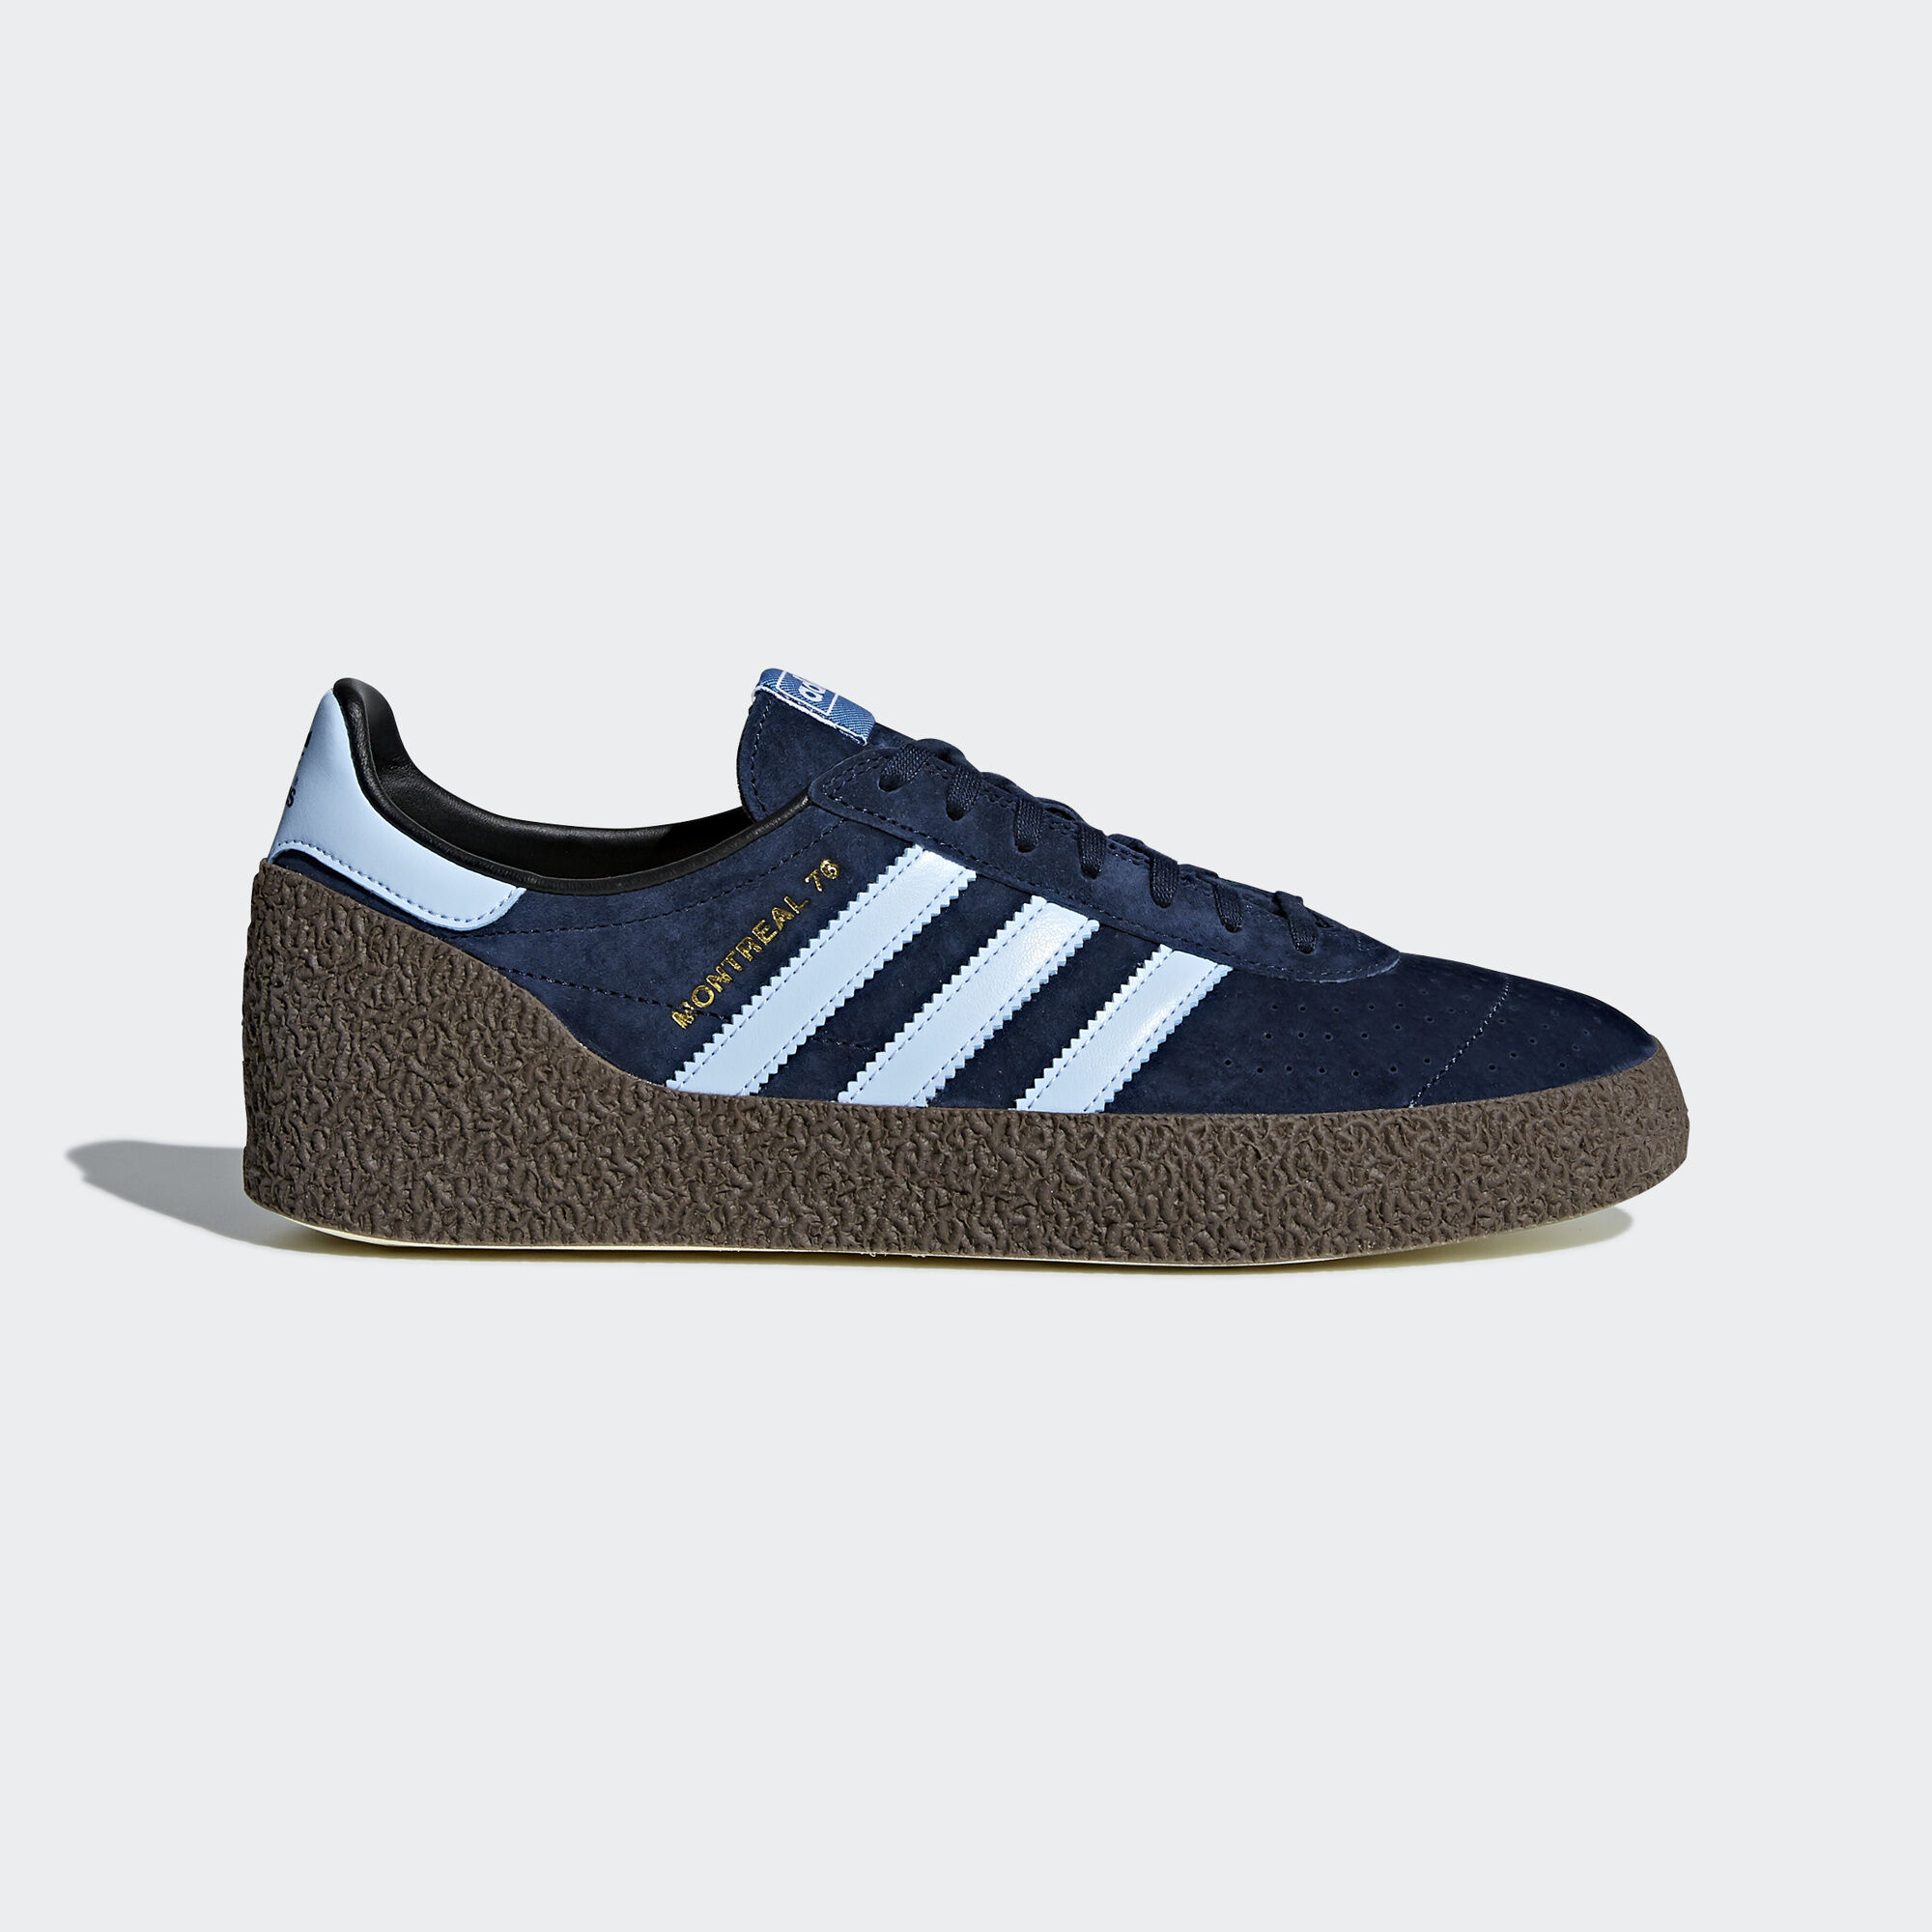 adidas Montreal 76 leather sneakers MphlBTP